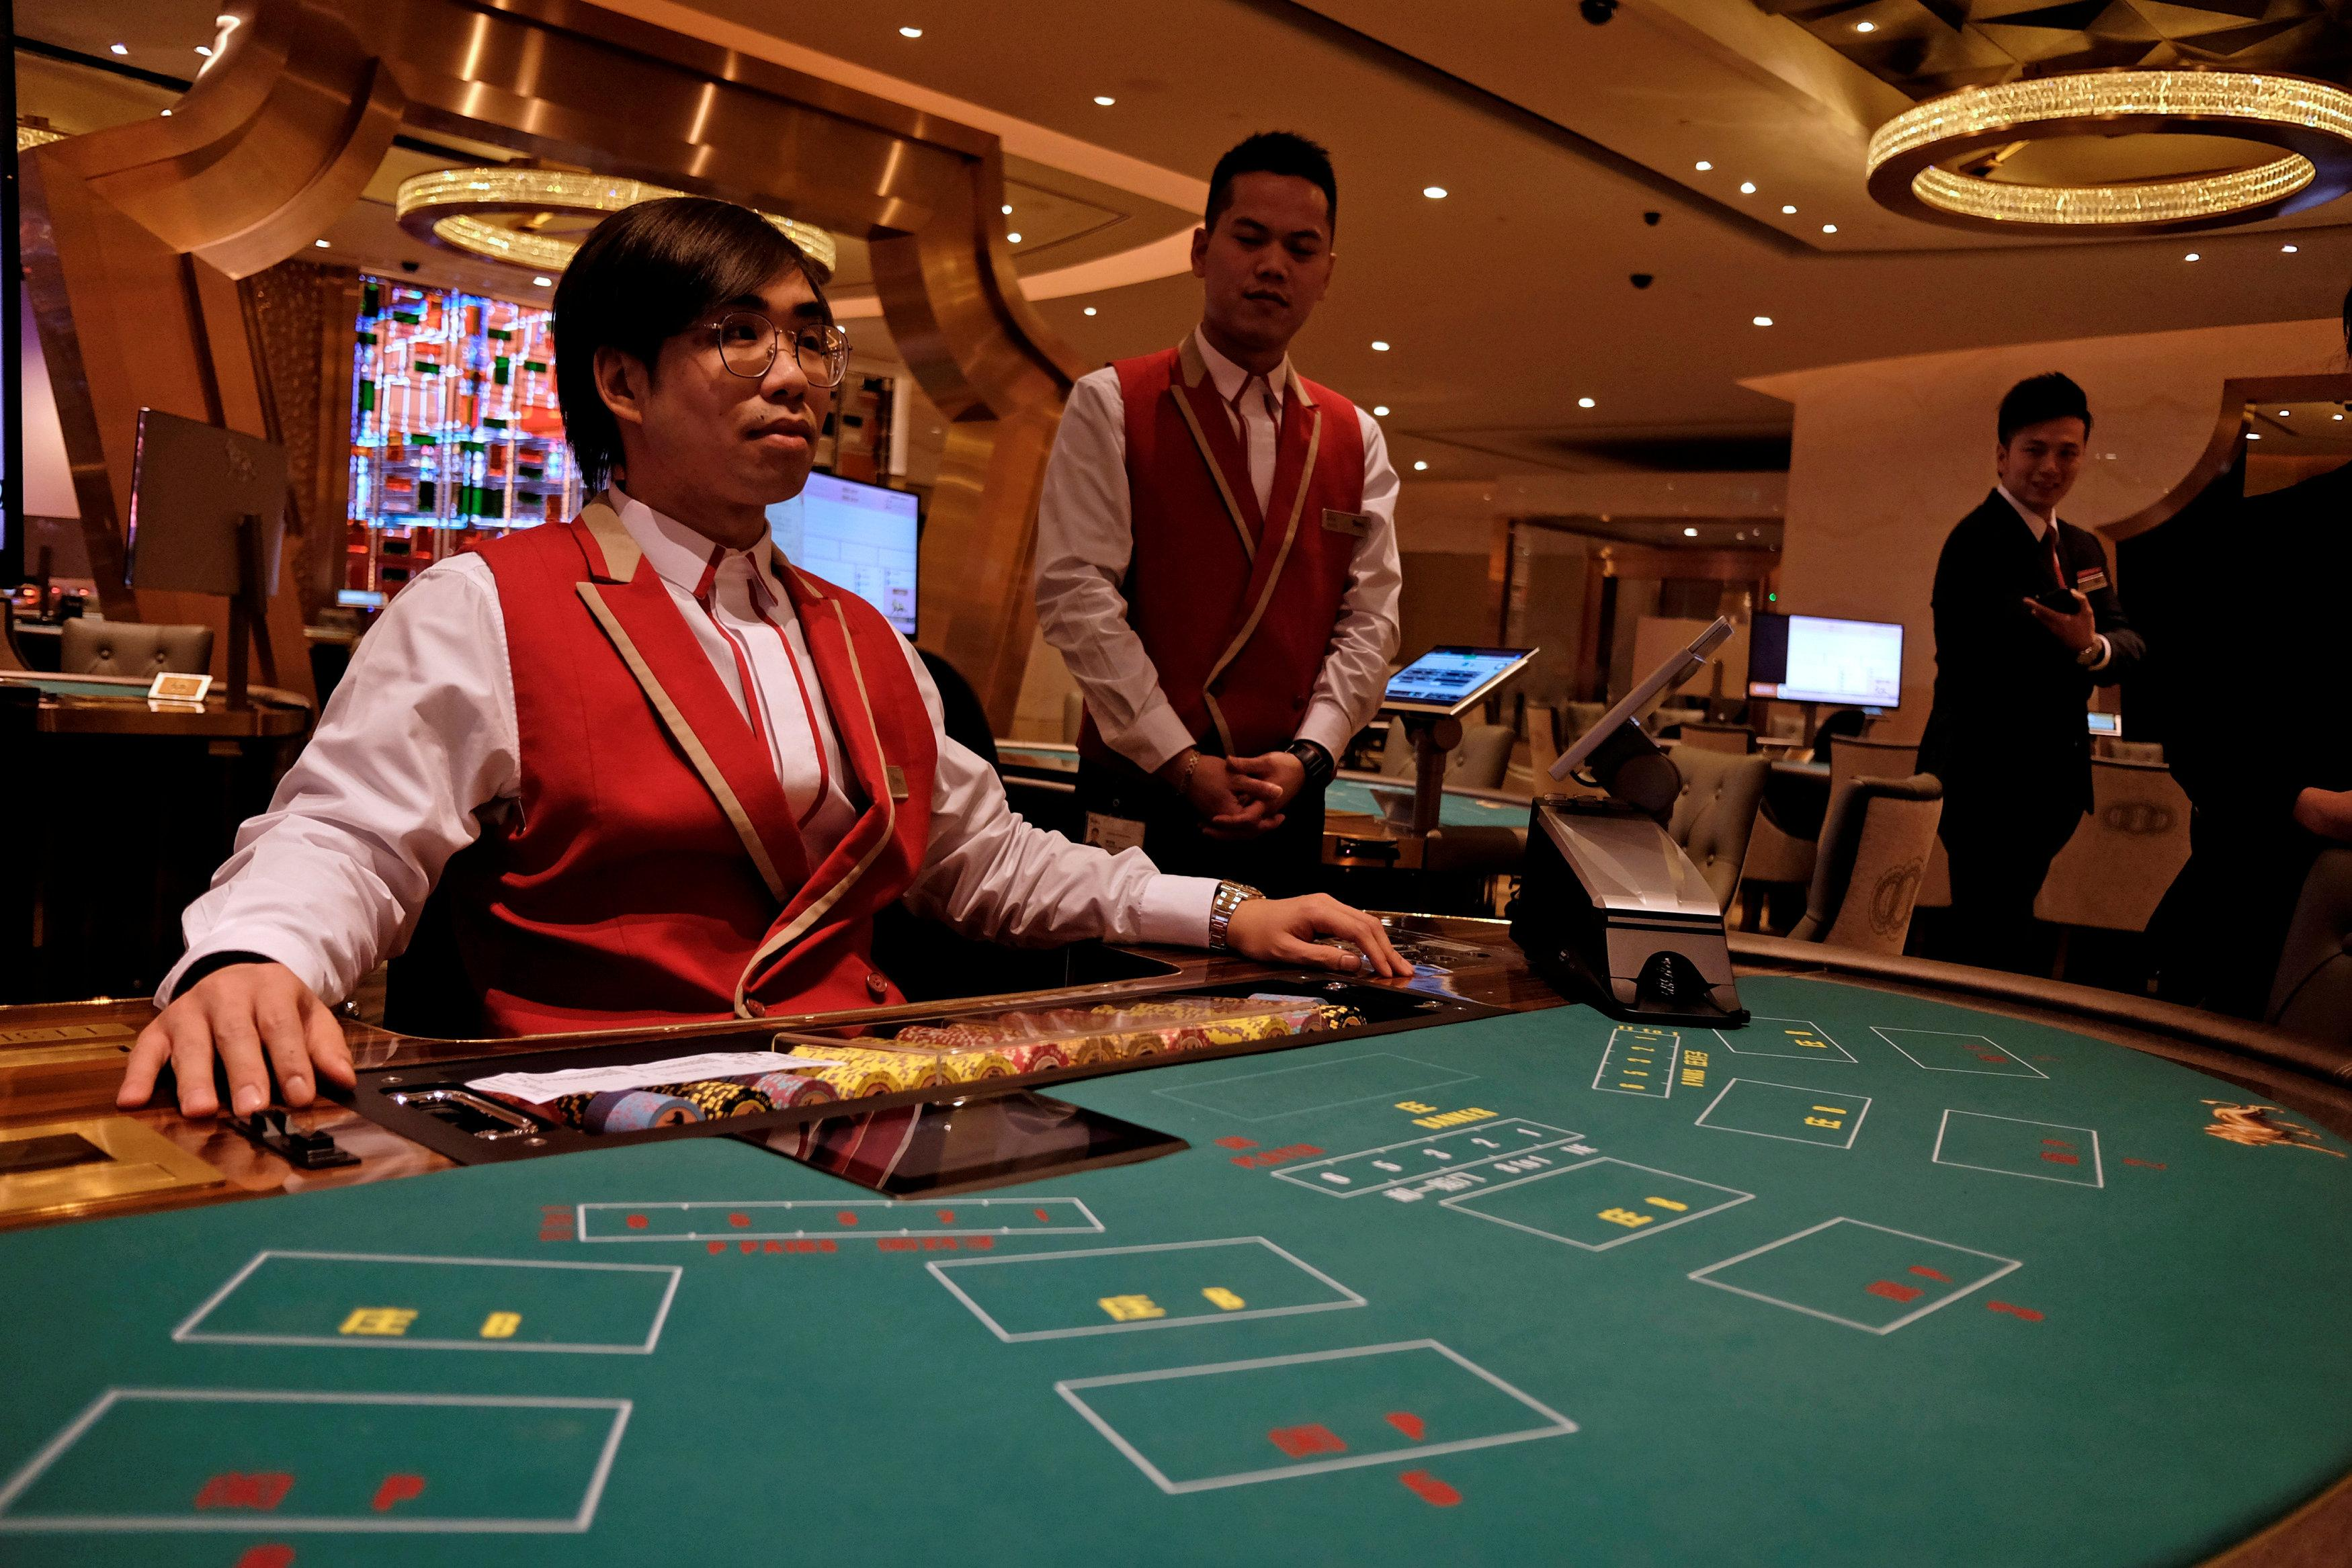 Employees inside the casino prepare for the opening of MGM Cotai in Macau, China February 13, 2018. Bobby Yip